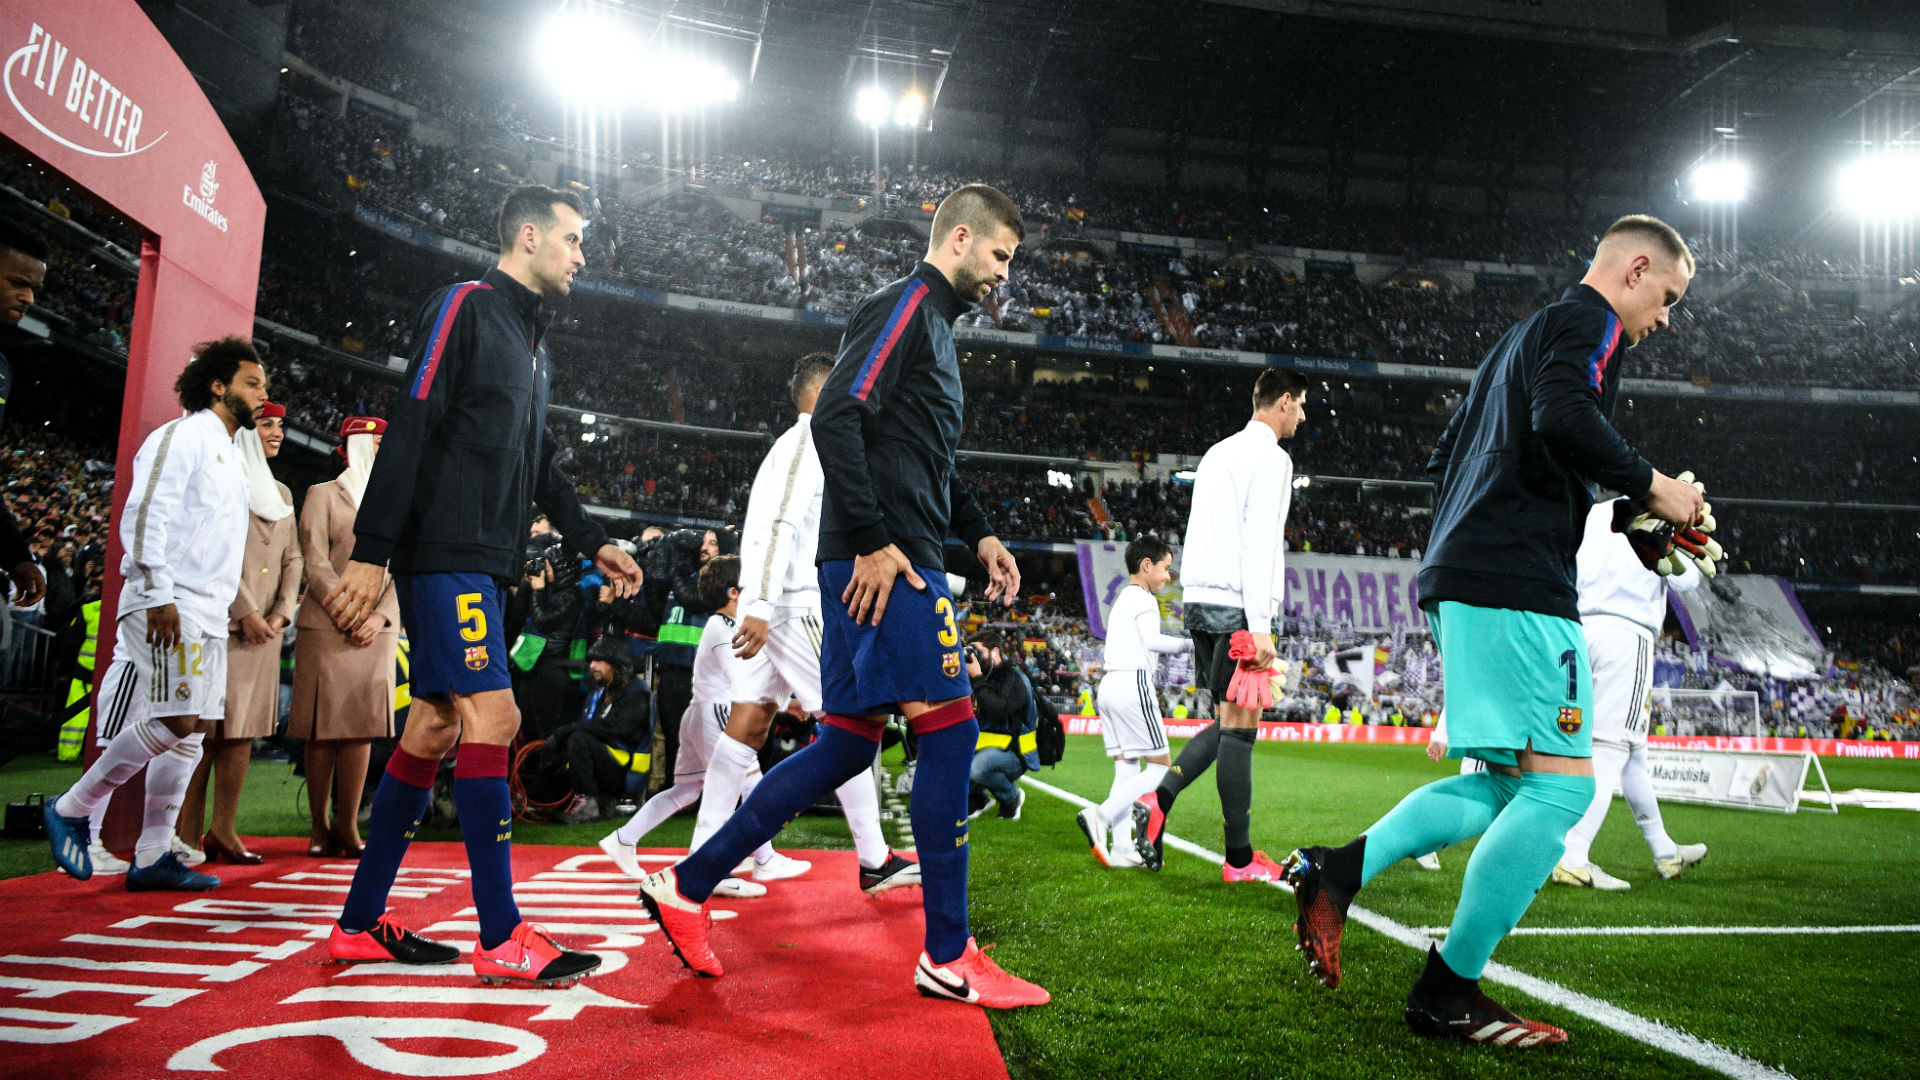 LaLiga is back: The games that could decide the title, relegation and European qualification